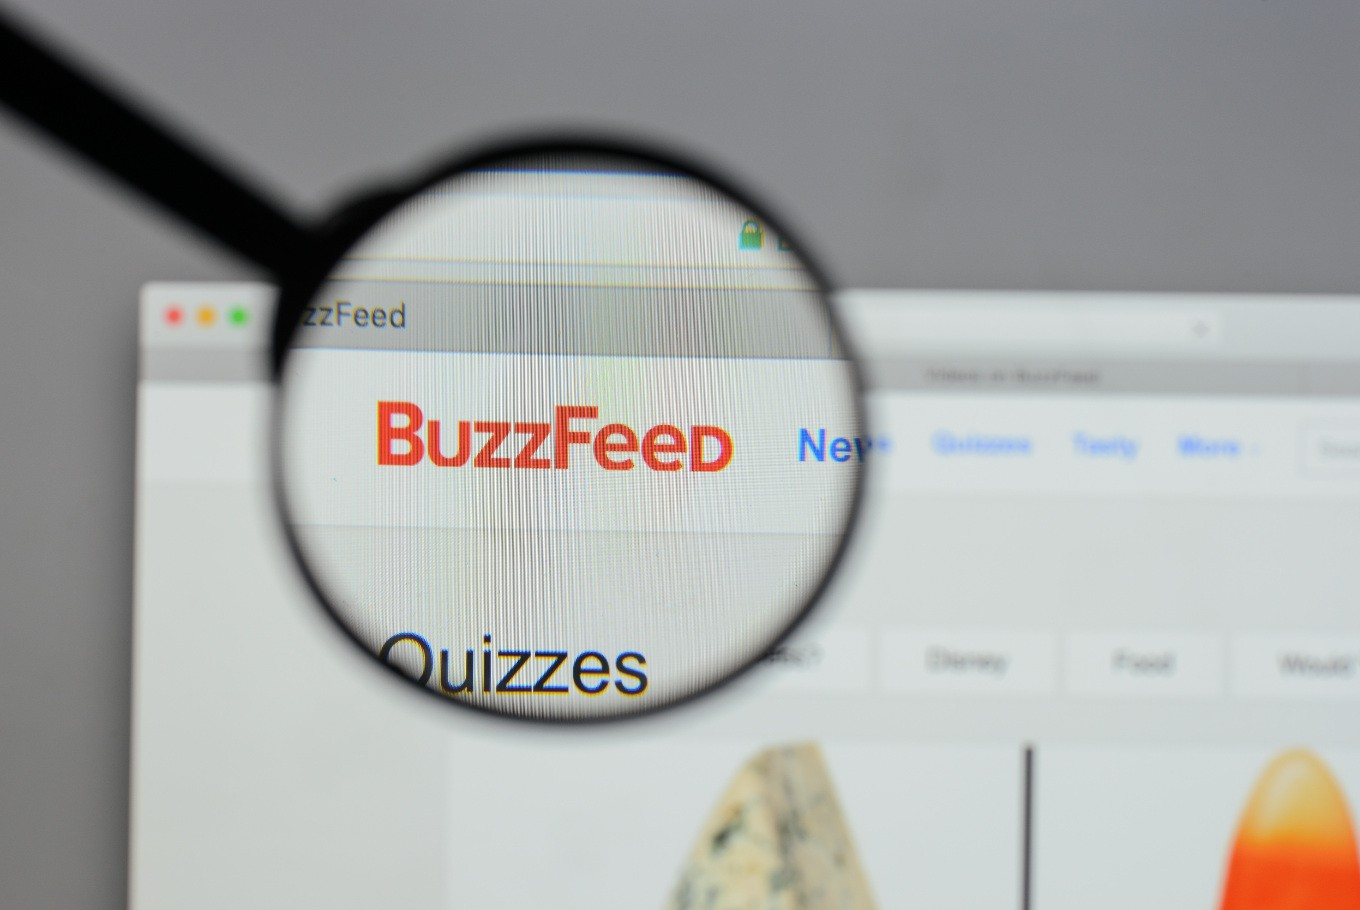 US free news sites BuzzFeed, HuffPost feel the layoff pinch